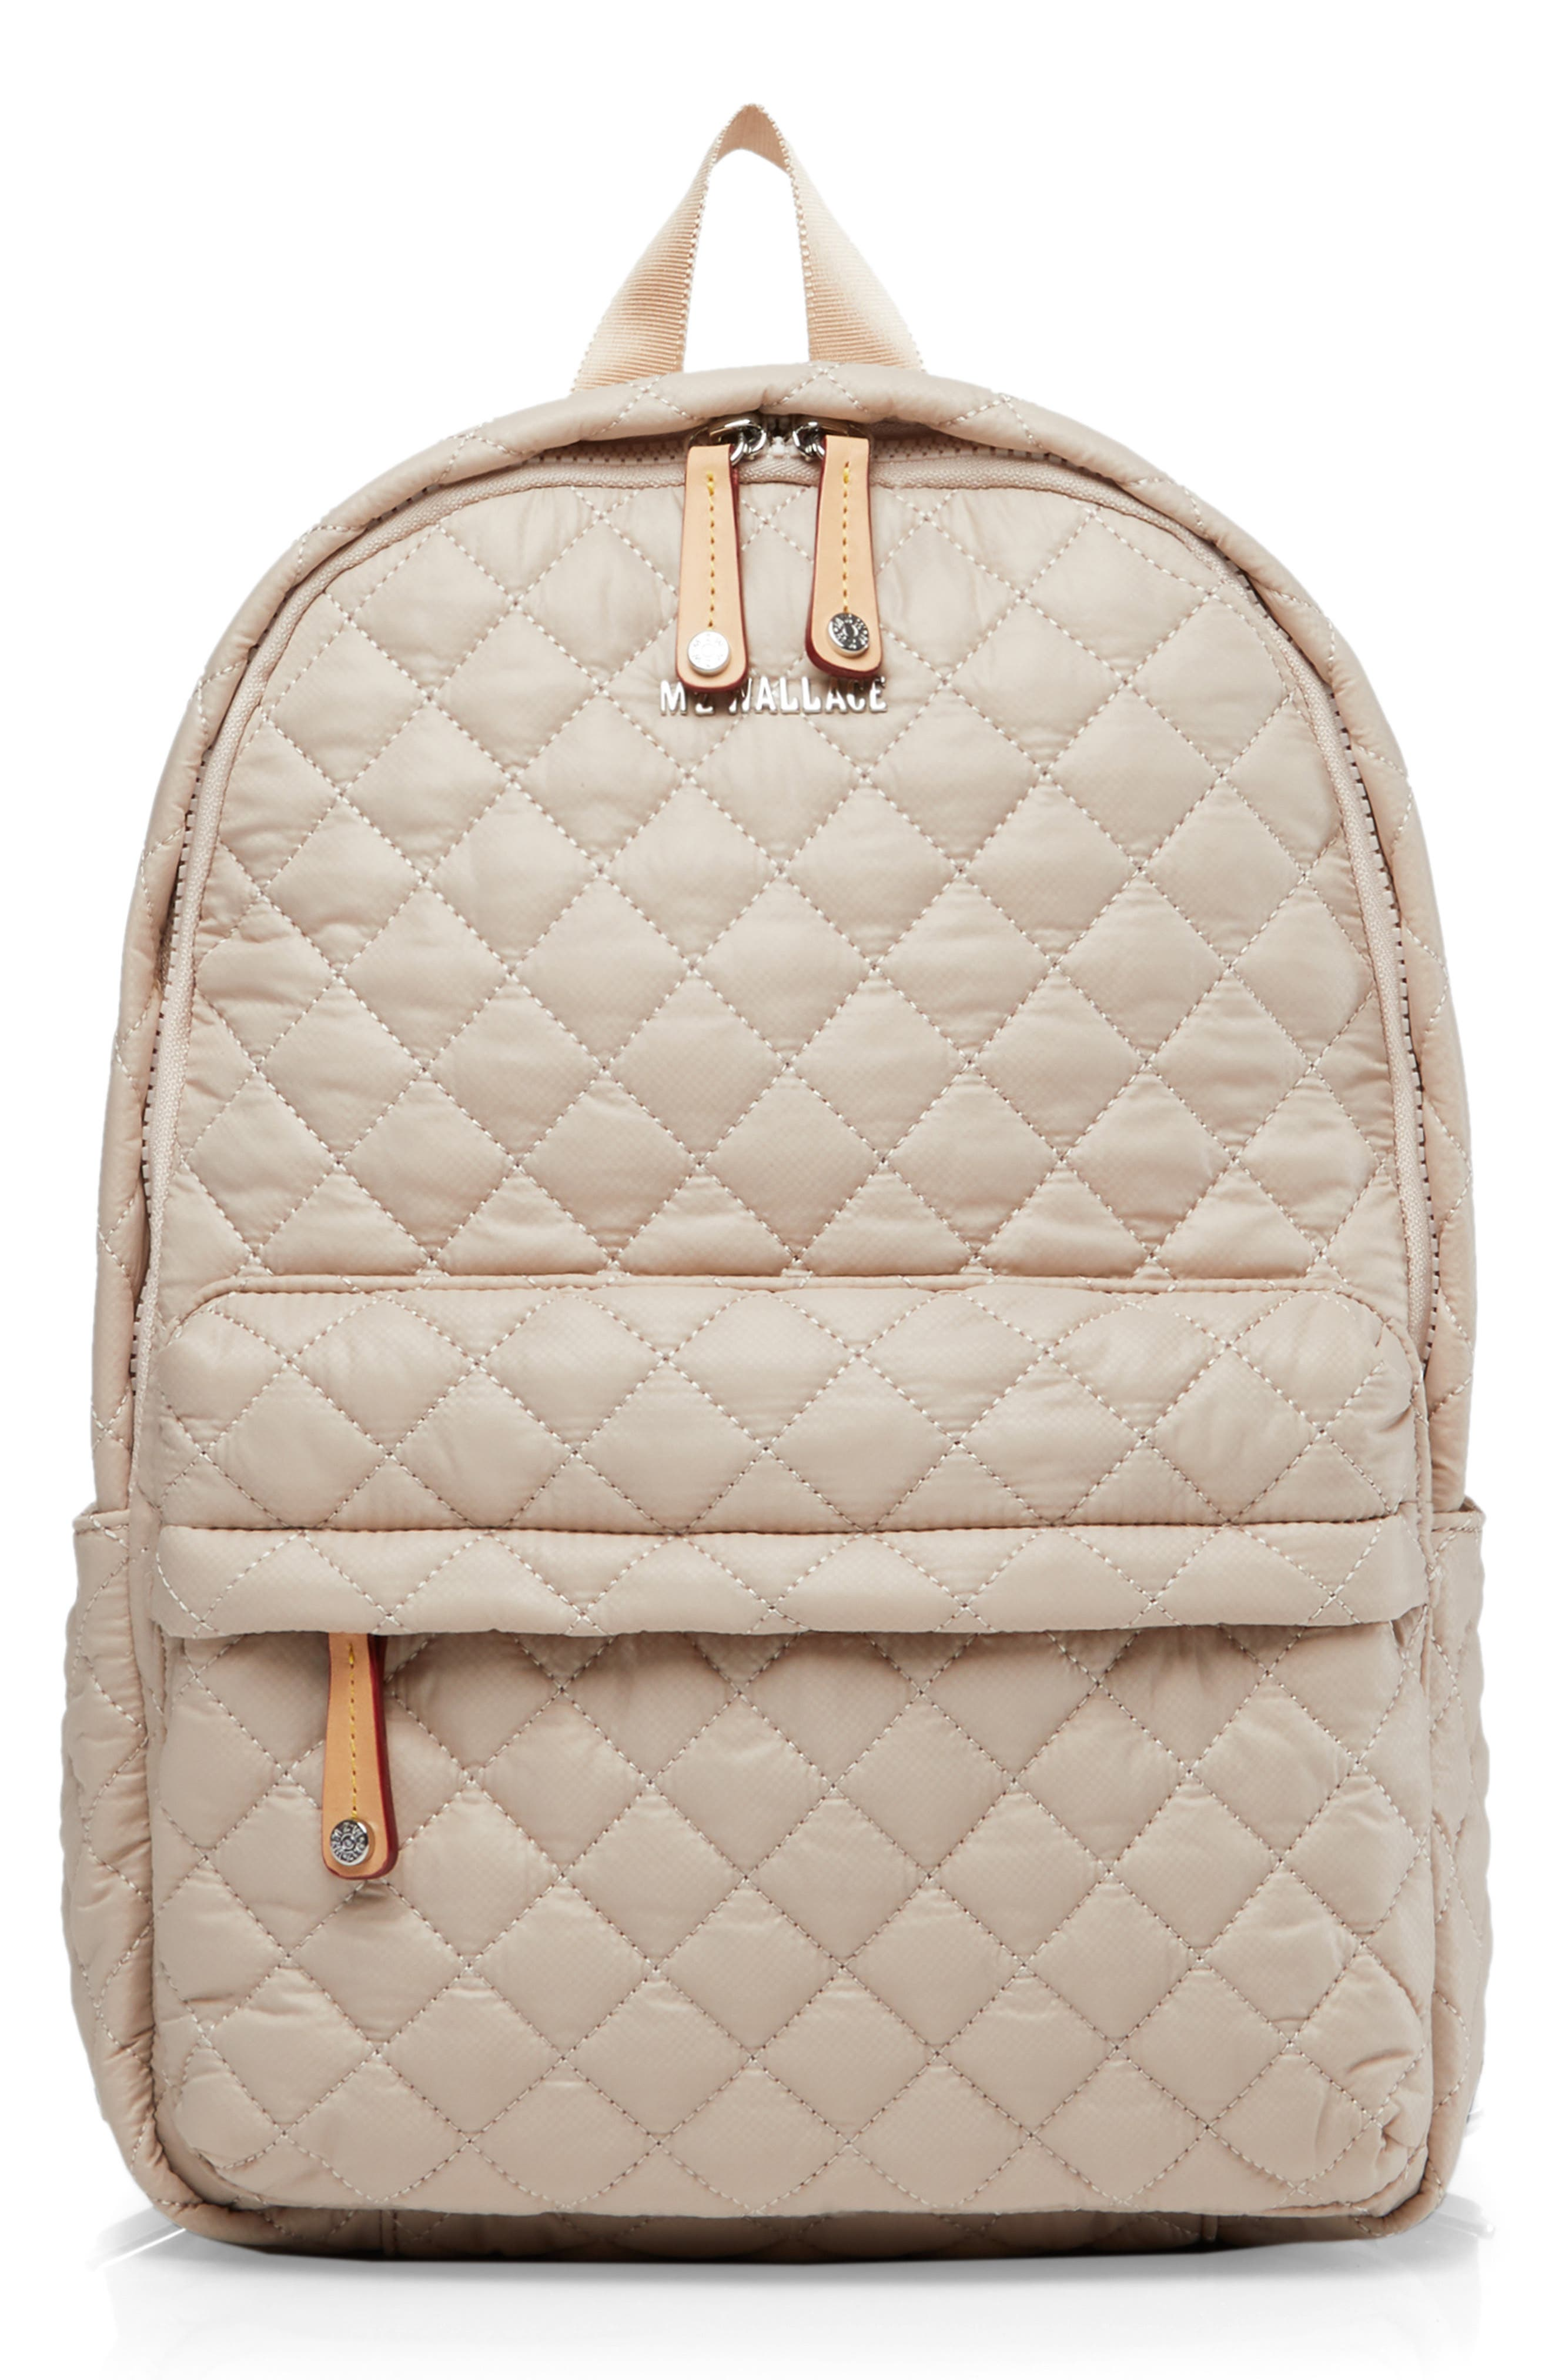 Mz Wallace Backpacks SMALL METRO BACKPACK - IVORY